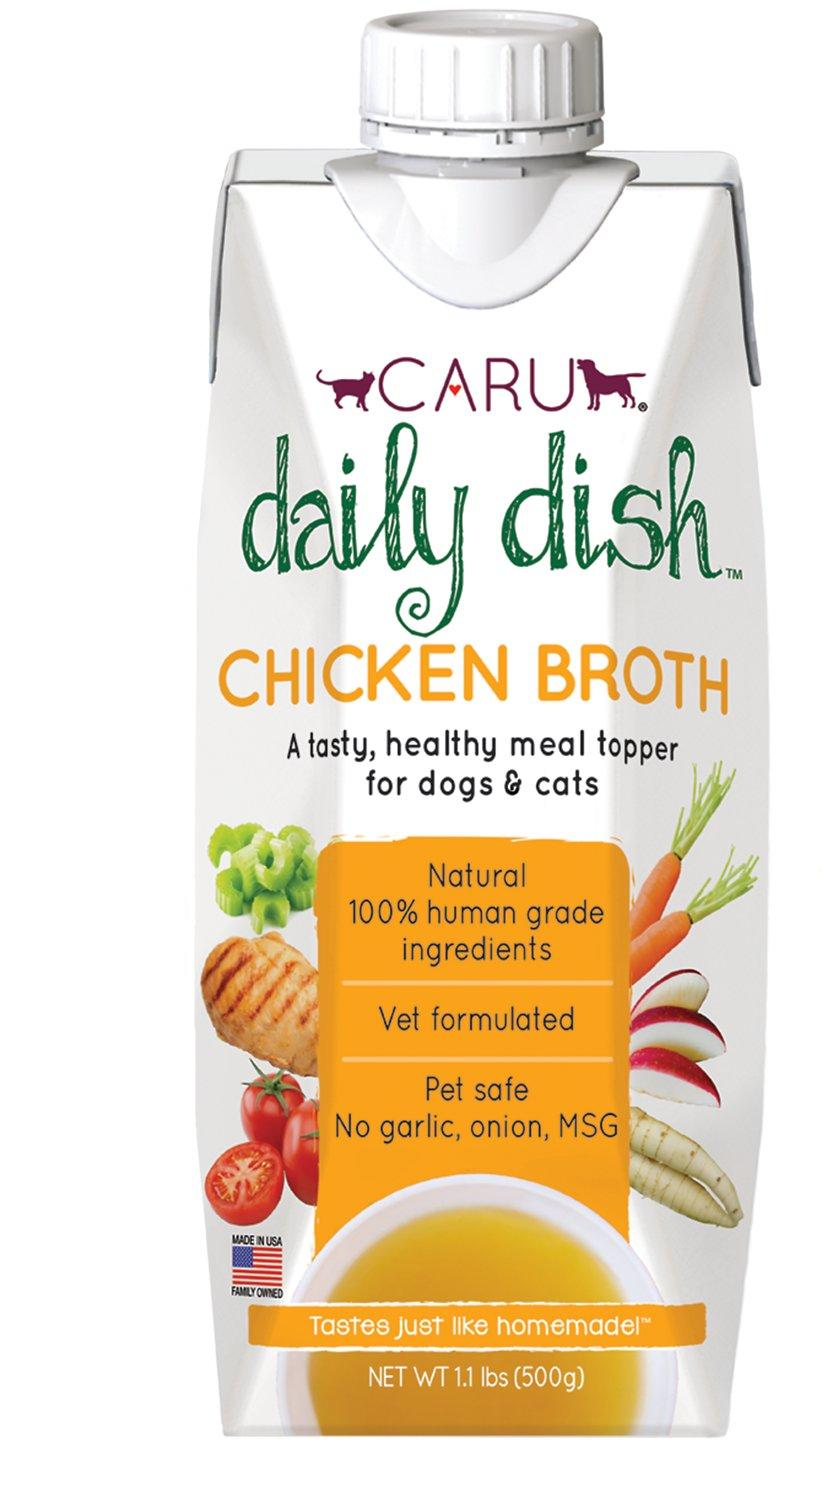 Caru Daily Dish Chicken Broth Dog & Cat Wet Food Topper, 1.1-lb